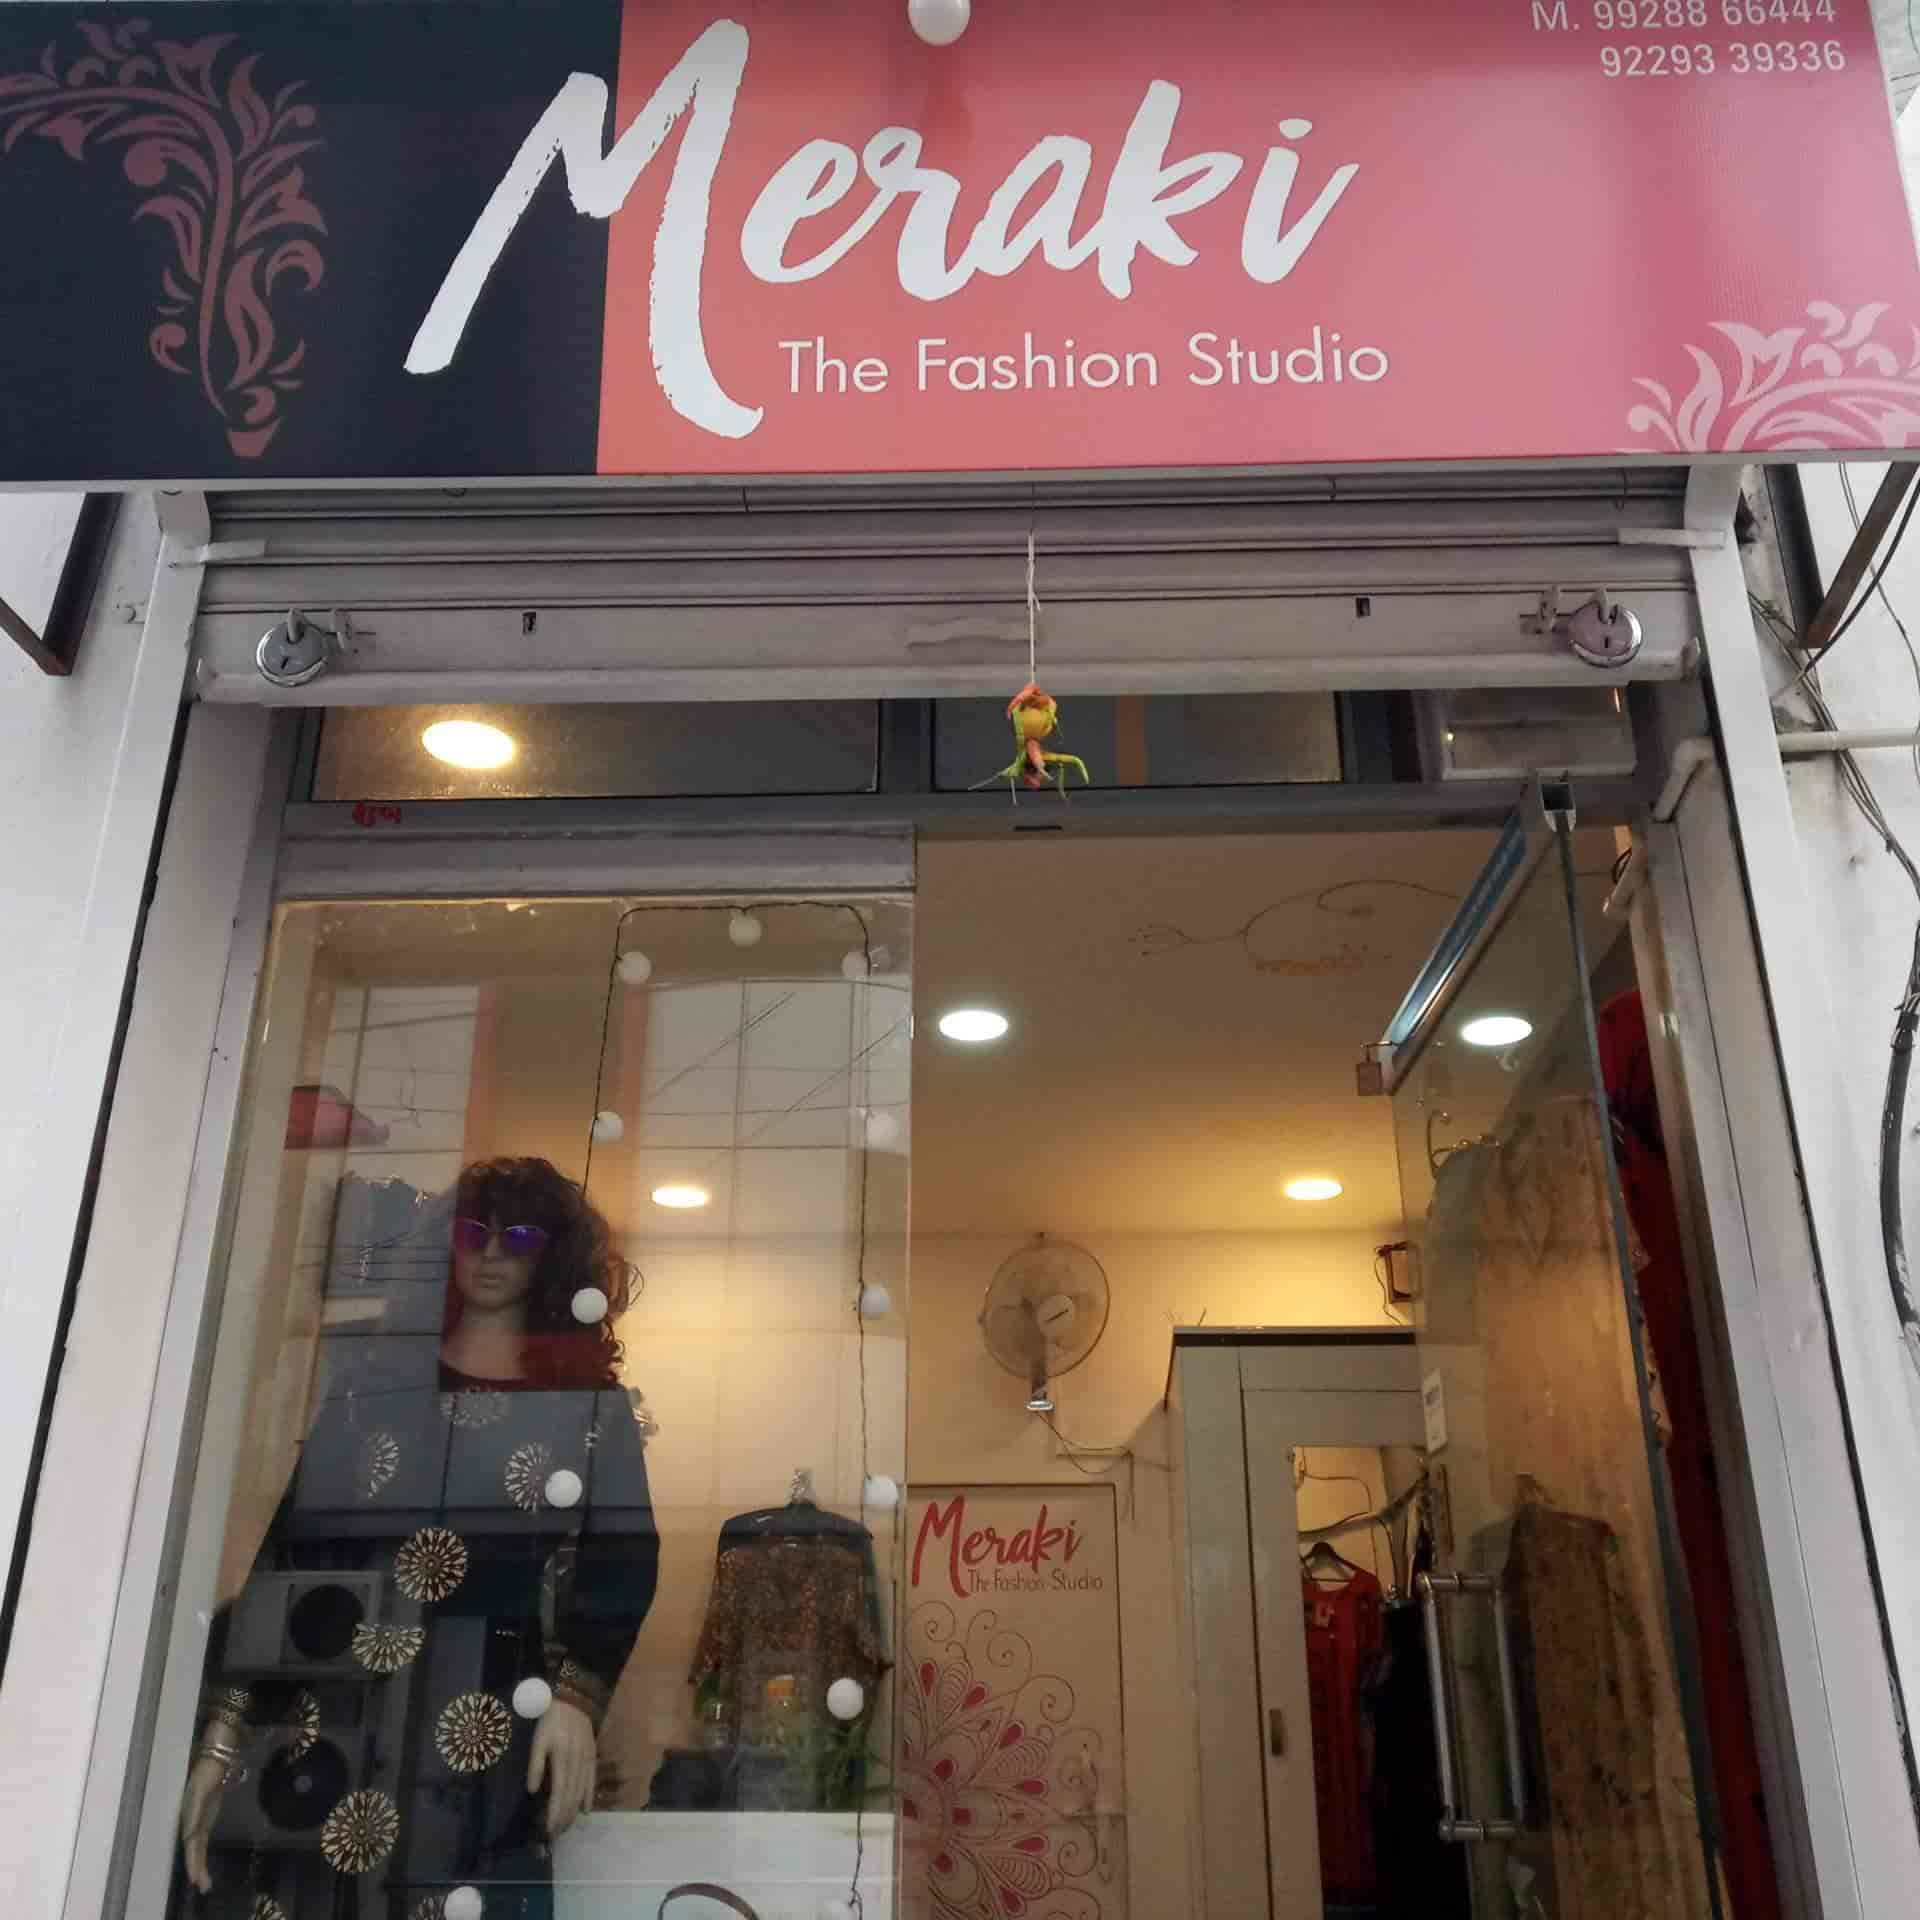 Meraki Fashion Studio, Udaipur City - Women Boutiques in